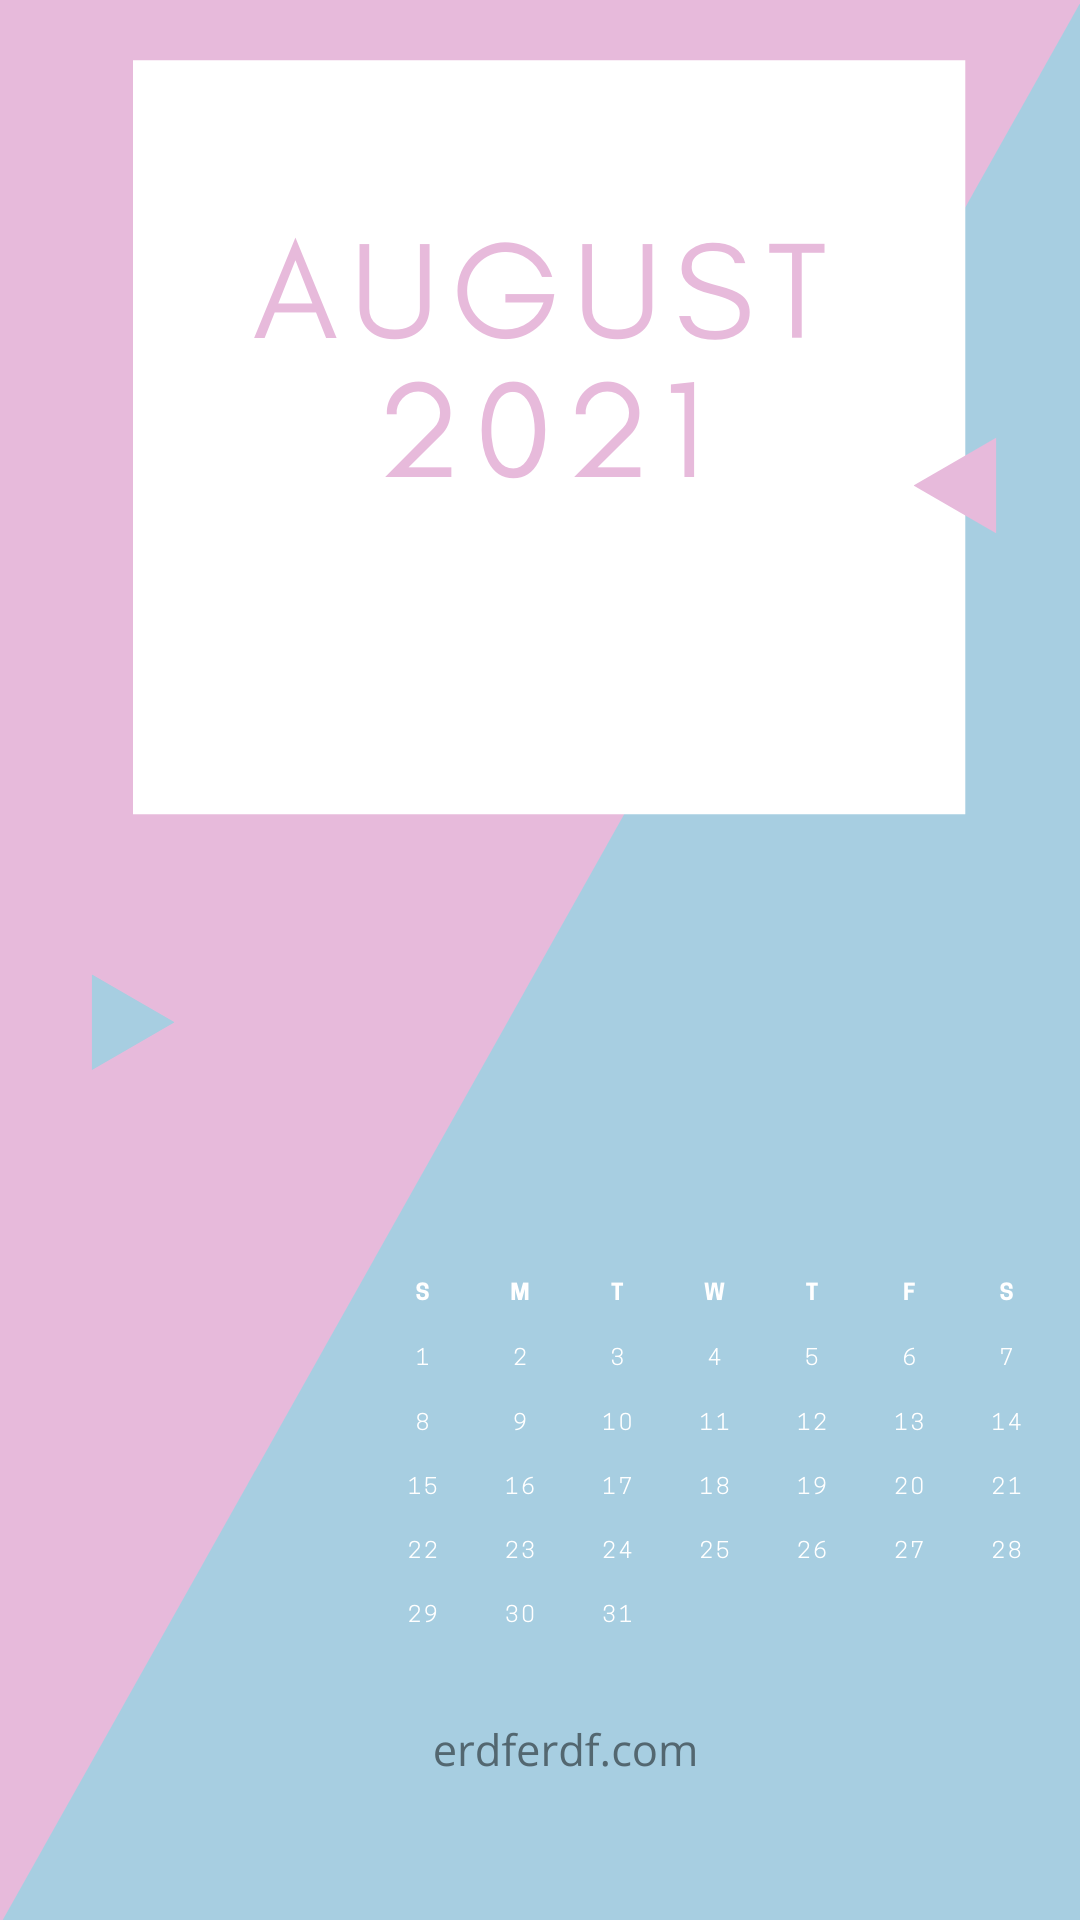 August 2021 Callendar Wallpaper Iphone Free